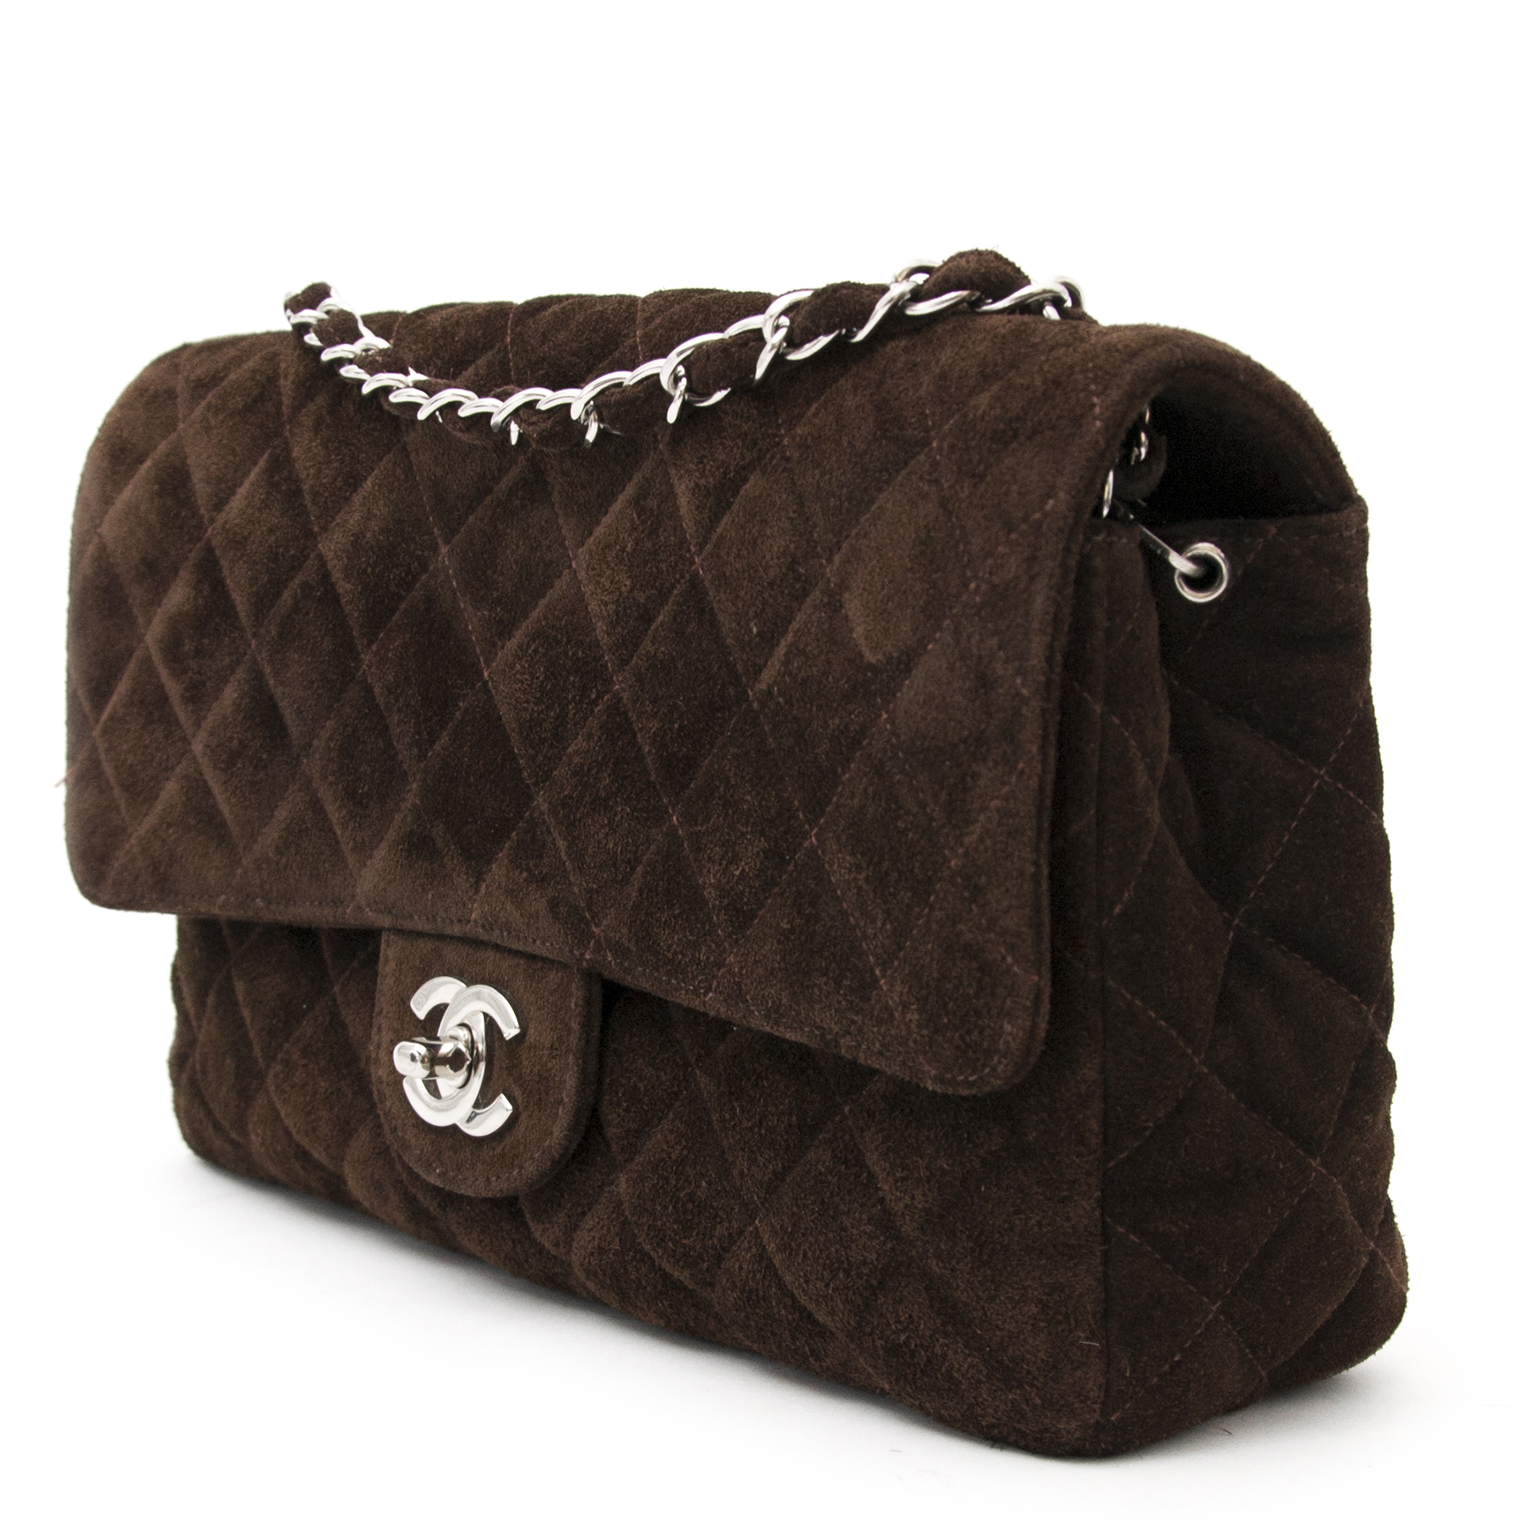 We buy and sell your secondhand designer luxury bags for the best price